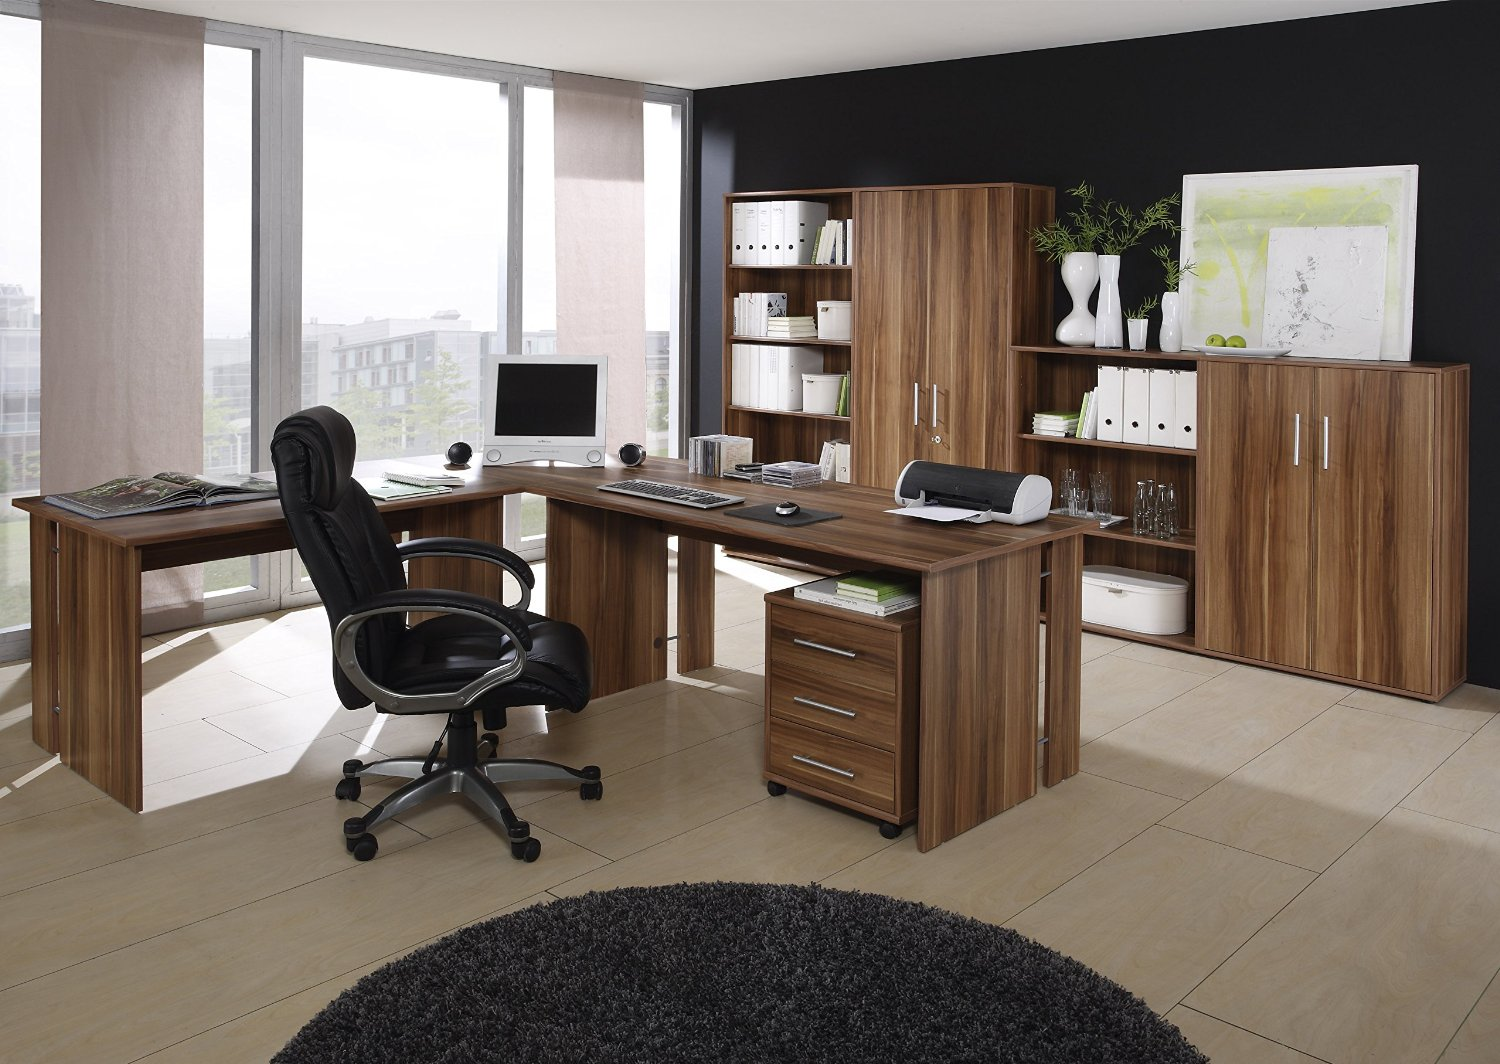 arbeitszimmer walnu nachbildung komplett preisg nstig sep. Black Bedroom Furniture Sets. Home Design Ideas